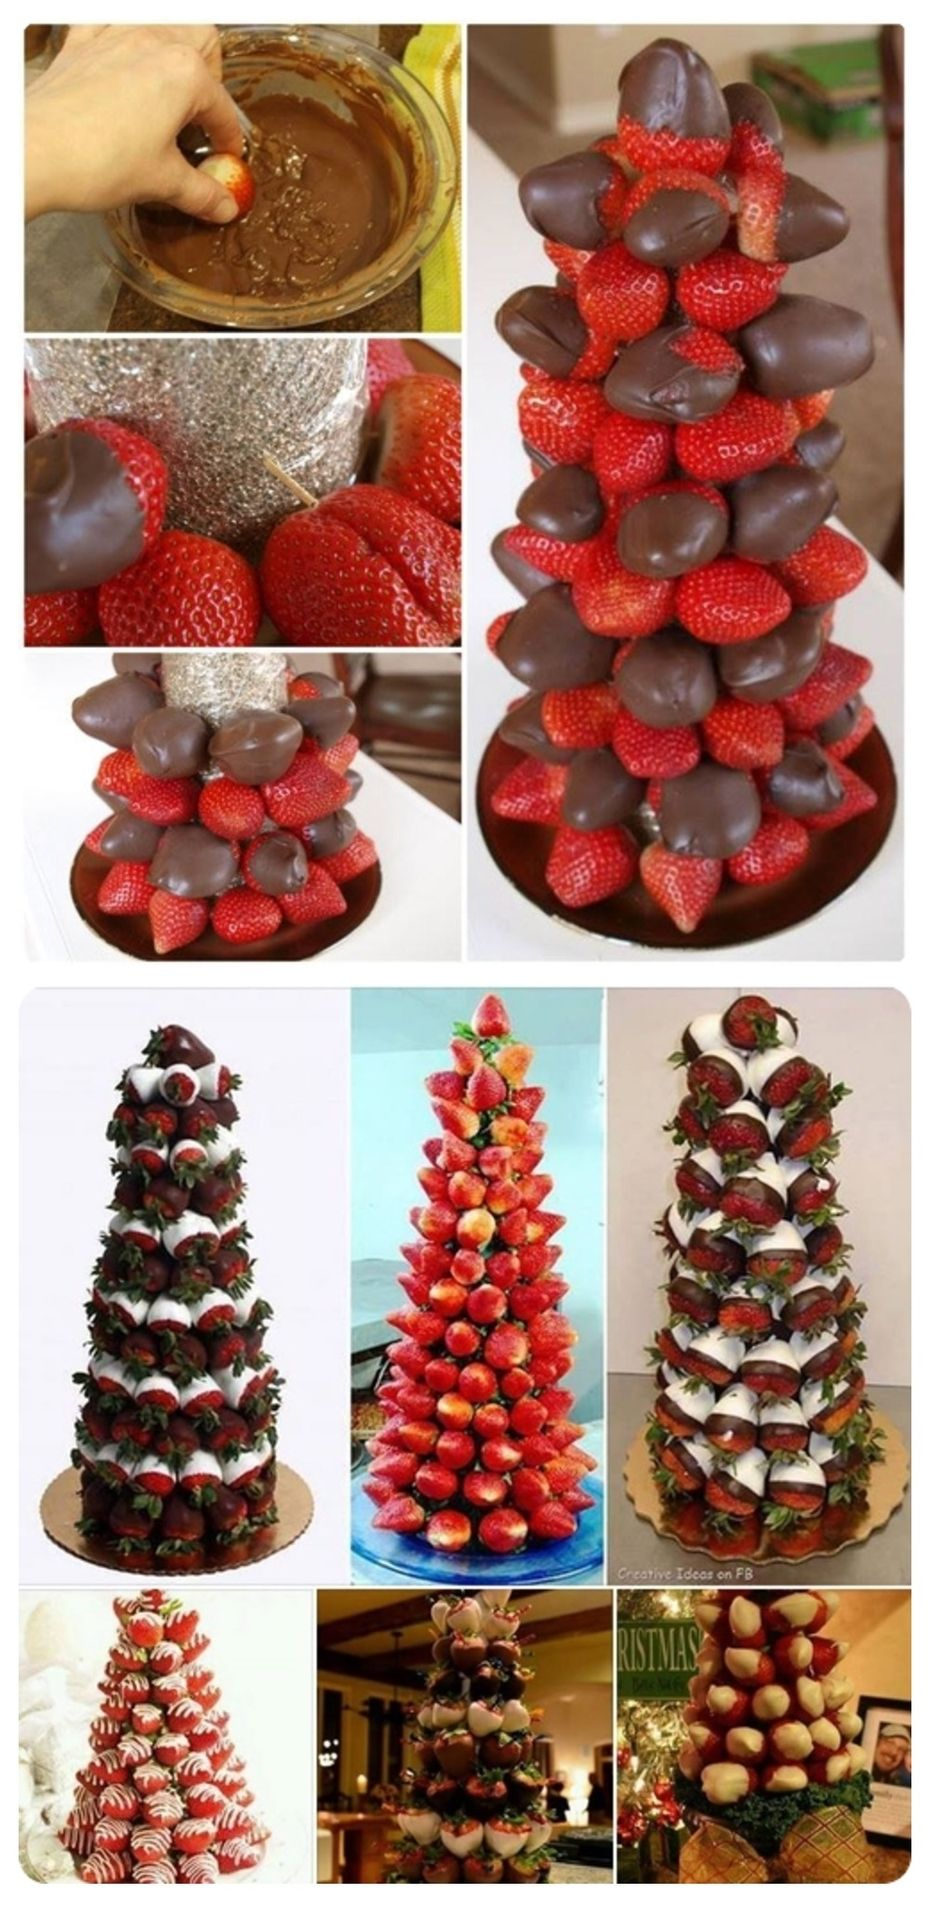 DIY Chocolate Covered Strawberry Trees | Food Page | Pinterest ...